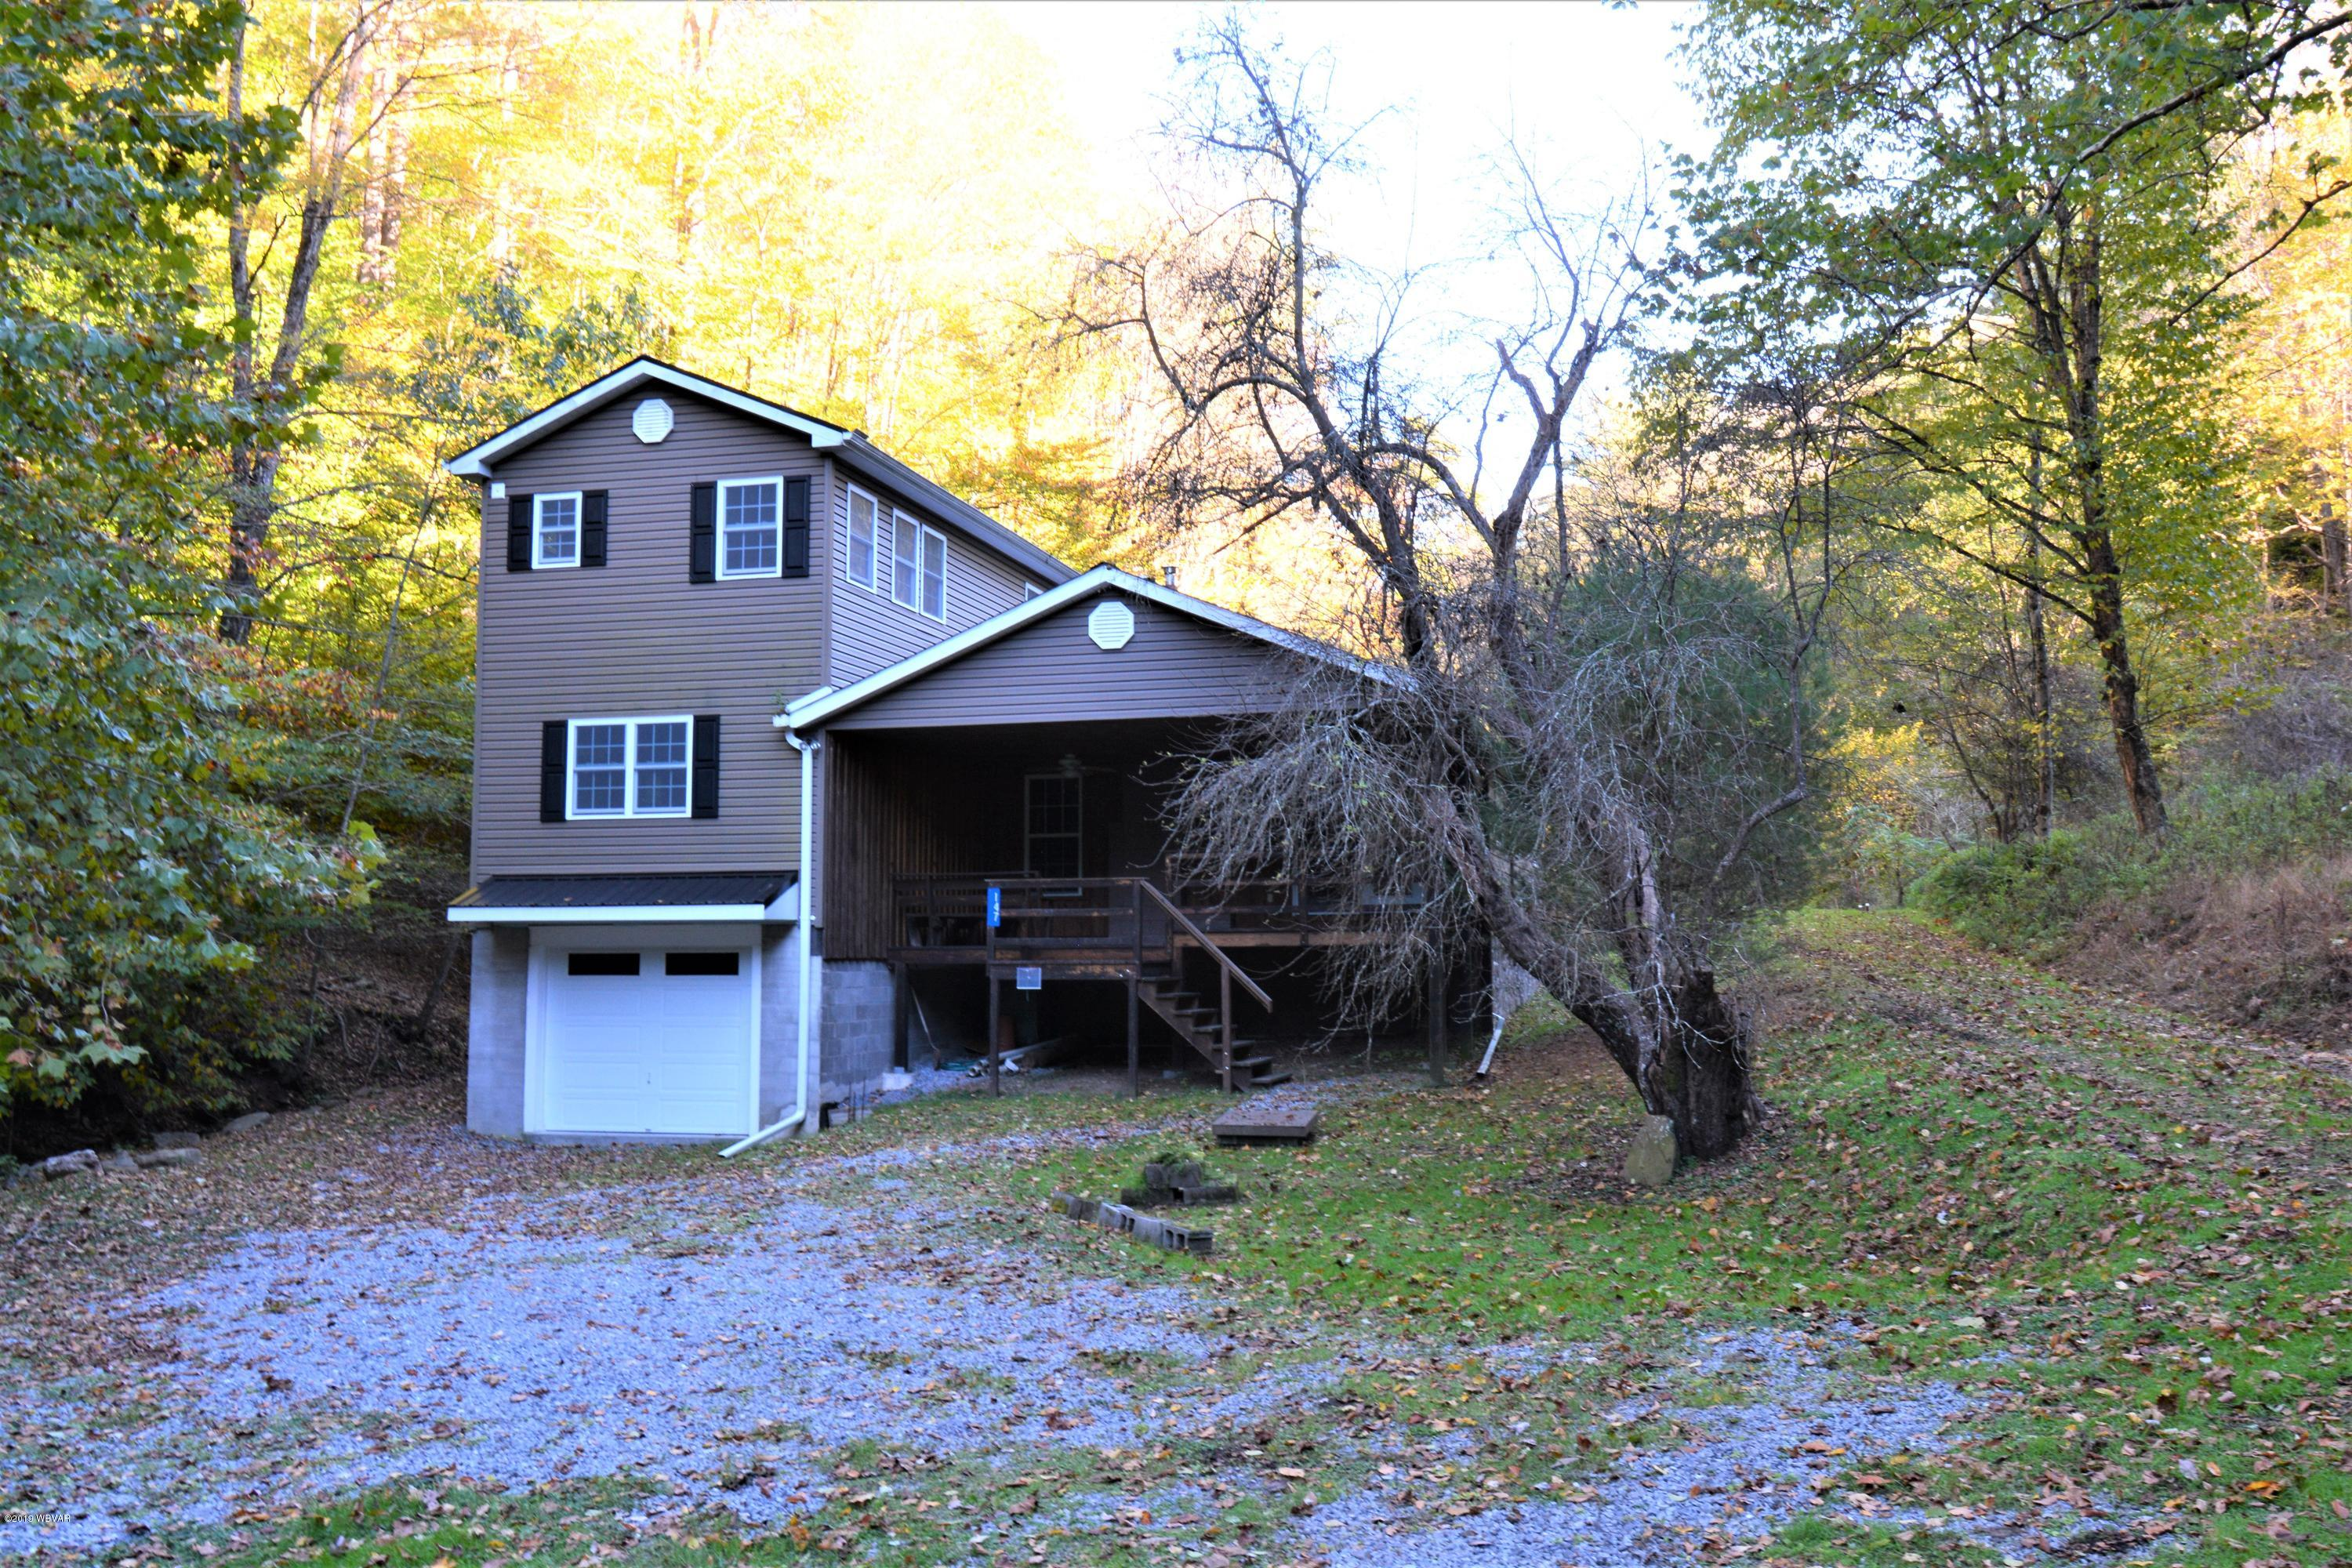 147 MARSH HOLLOW LANE,Cross Fork,PA 17729,3 Bedrooms Bedrooms,1 BathroomBathrooms,Cabin/vacation home,MARSH HOLLOW,WB-86171